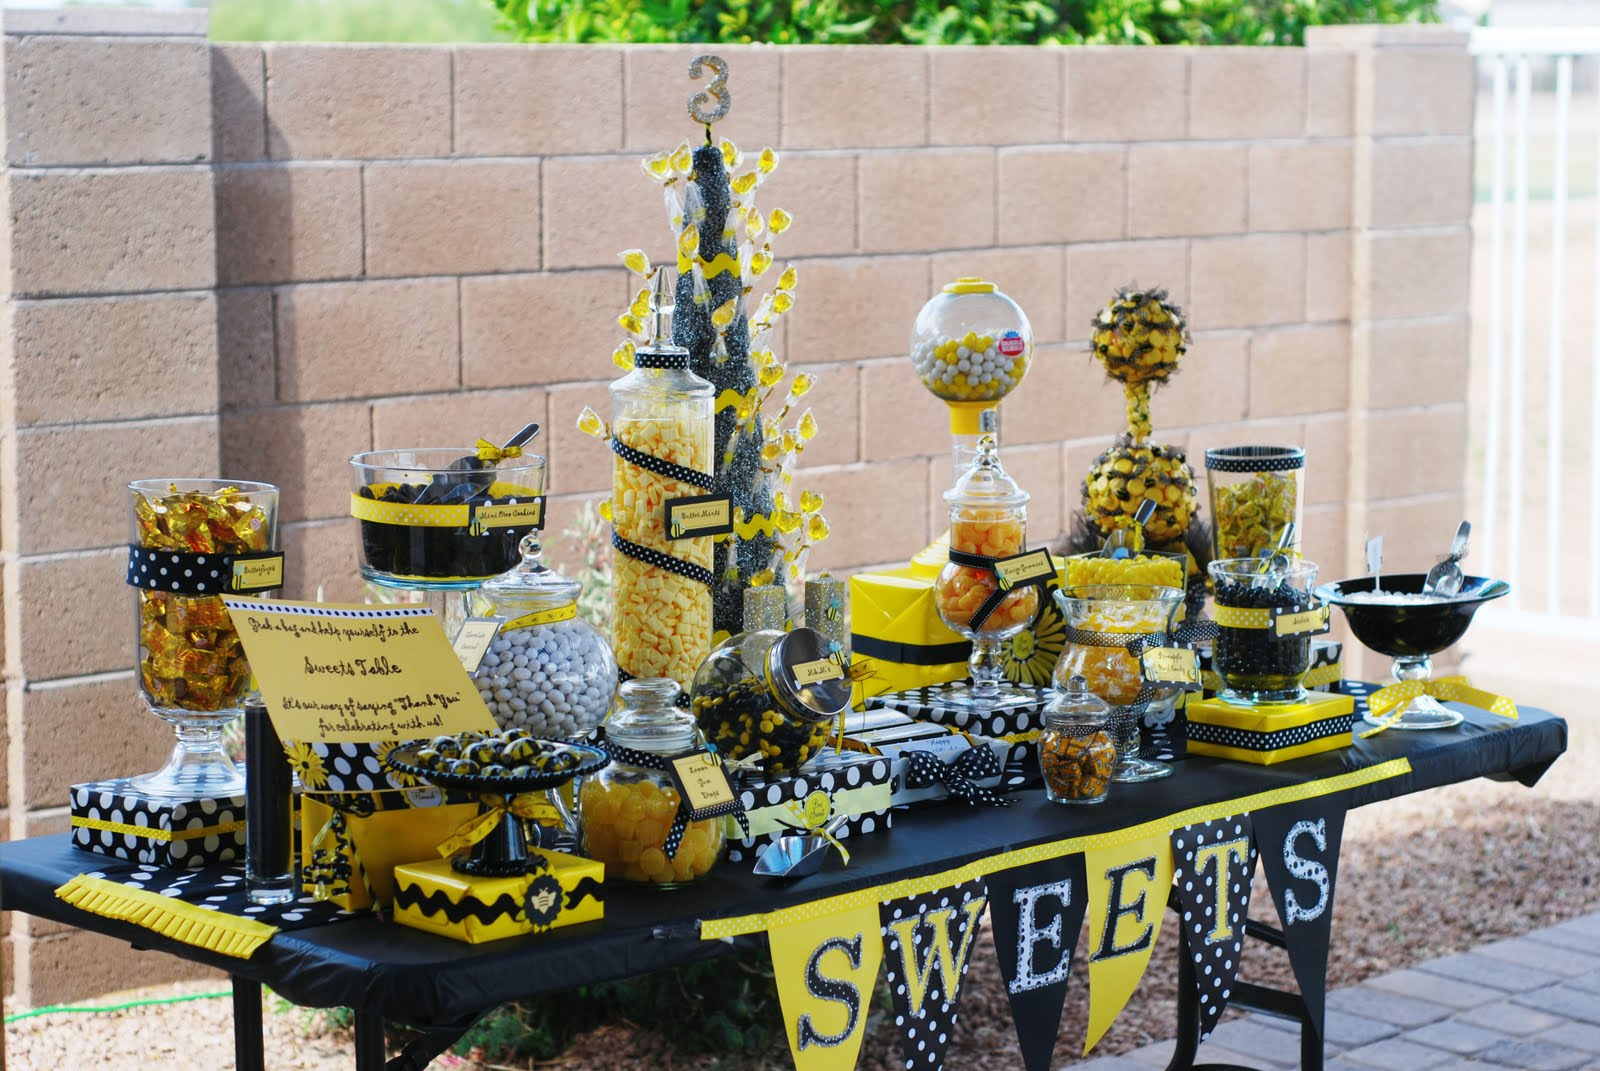 Bumble bee party a to zebra celebrations for Honey bee decorations for your home